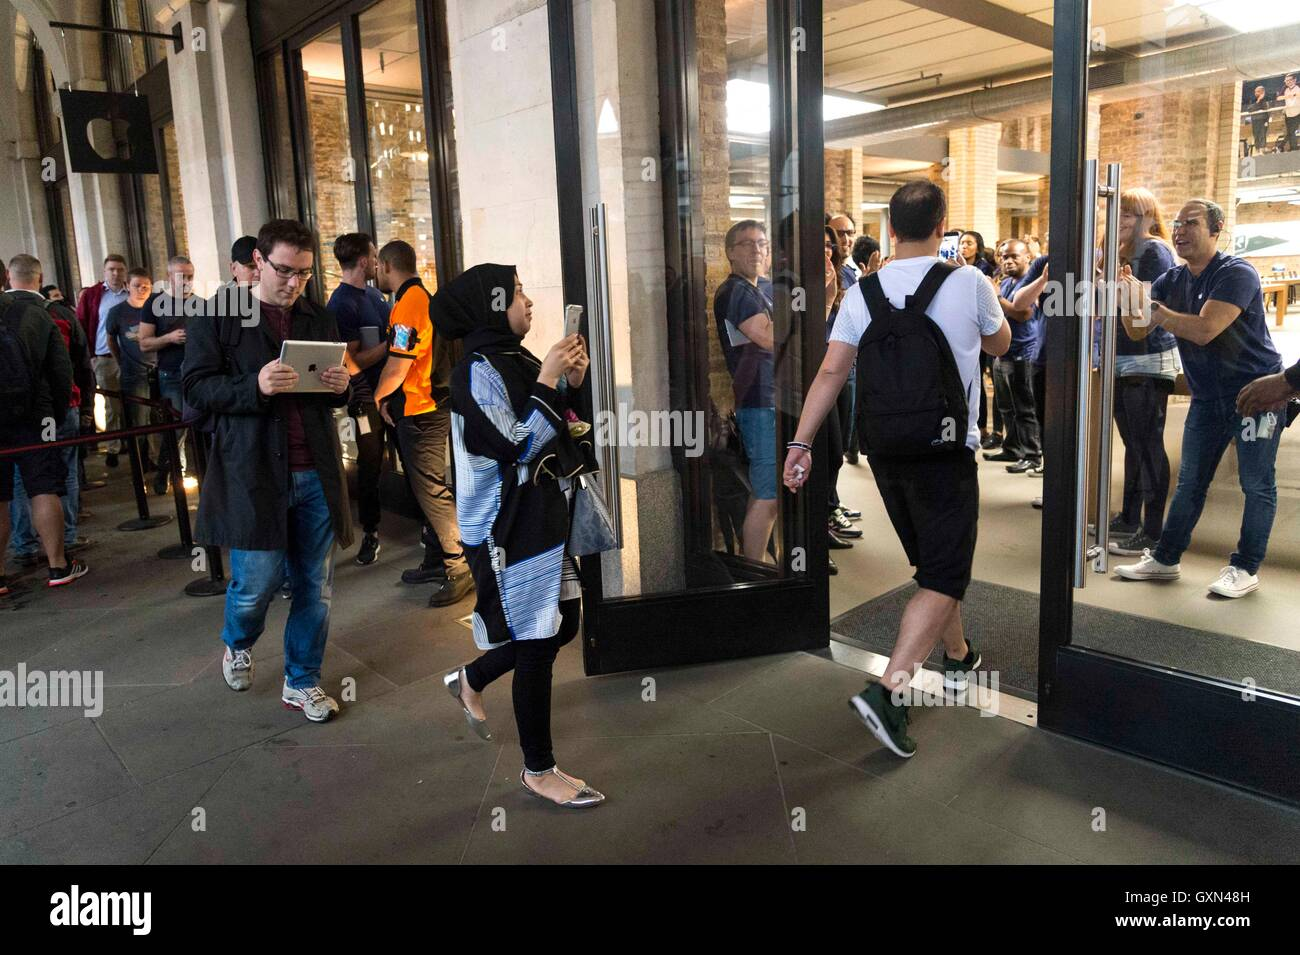 London, Britain. 16th Sep, 2016. Customers enter the Apple store in Covent Garden to collect their pre-ordered Apple - Stock Image